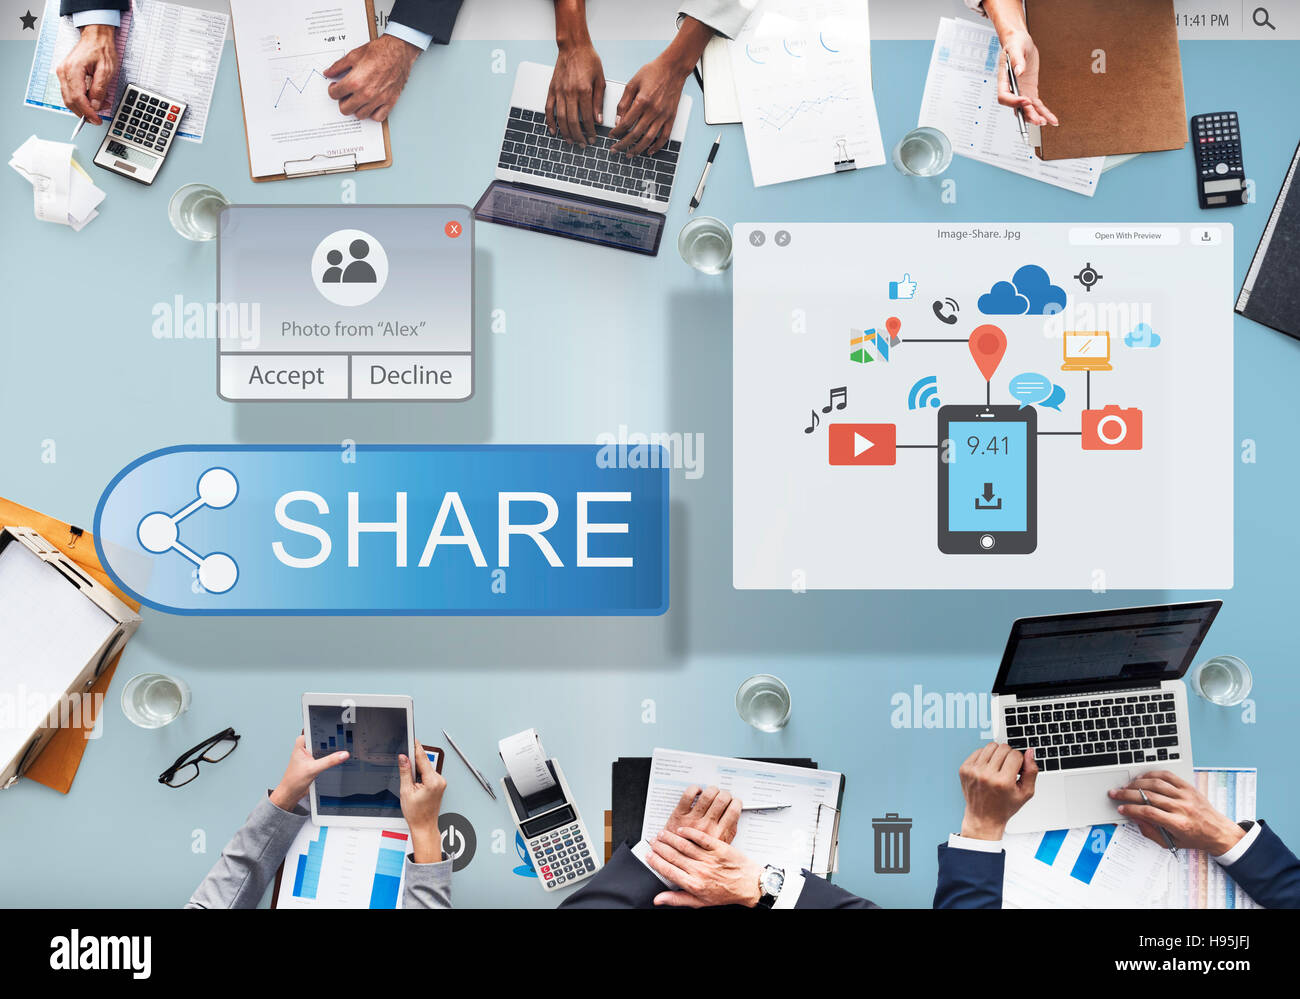 Share Connect Communicate Transfer Cloud Concept - Stock Image